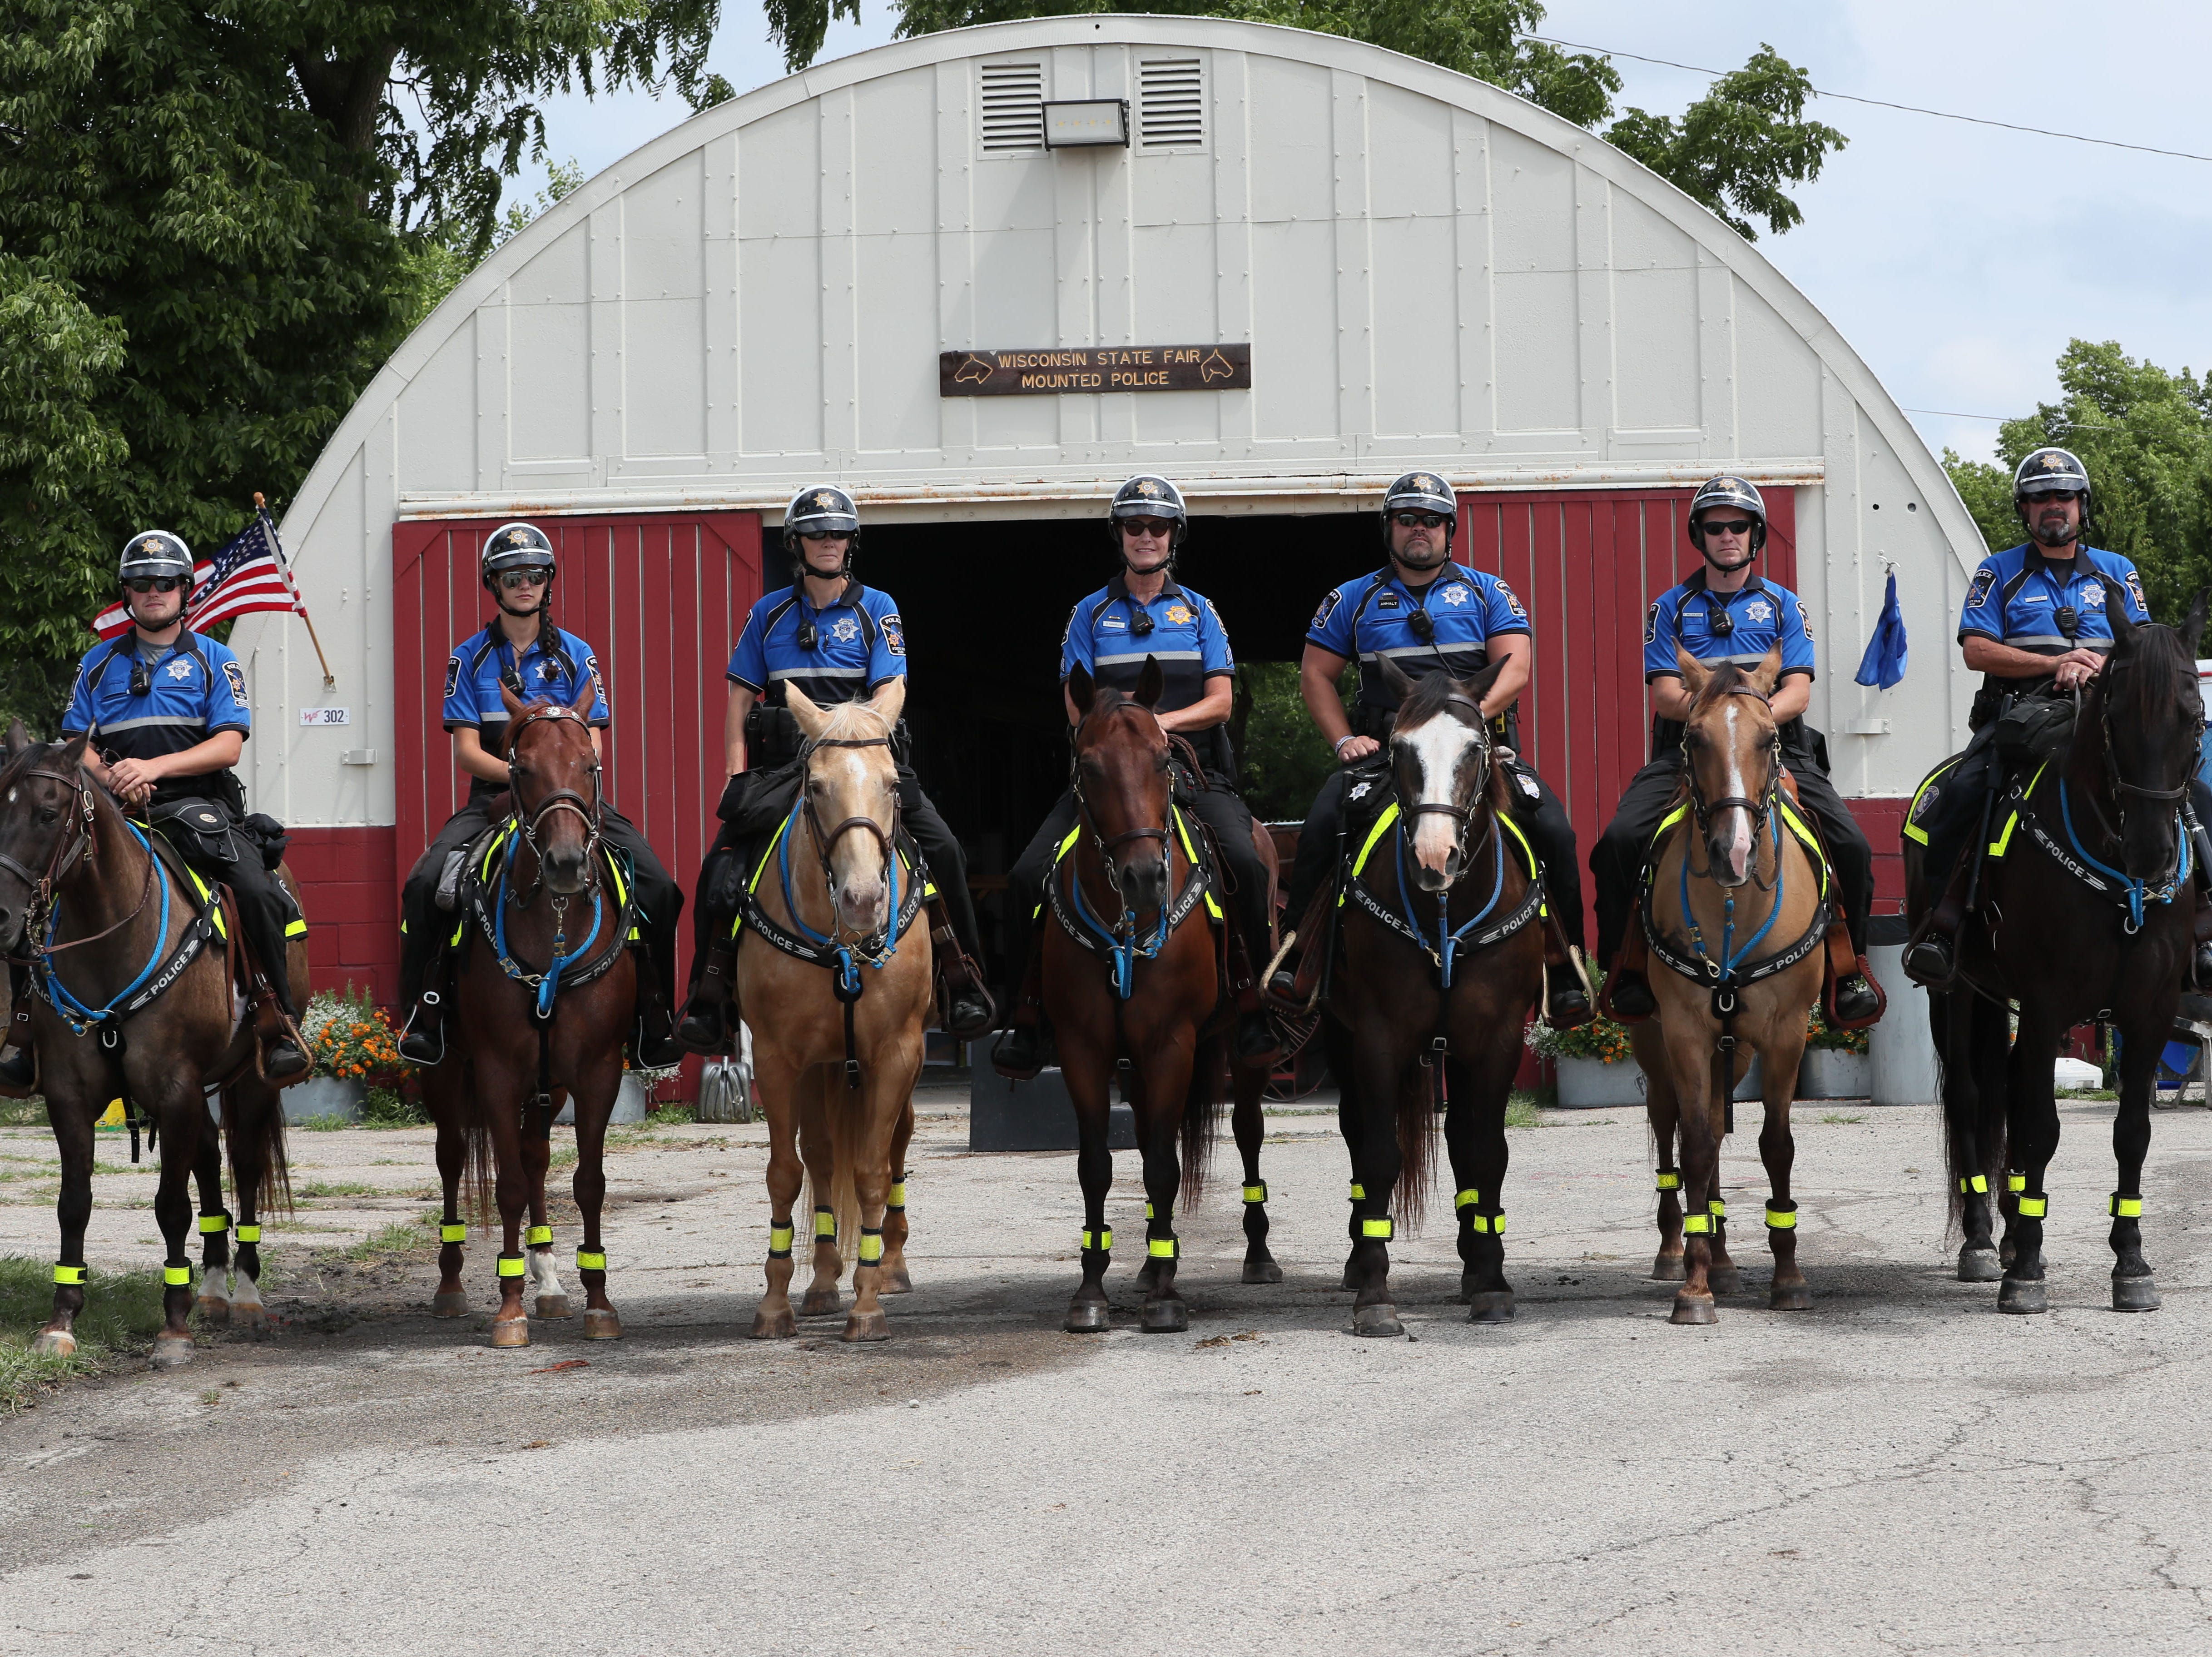 2018 is the 50th anniversary of the Wisconsin State Fair's mounted police patrol.  From left, mounted officers and their horses include Tristan Buddenhagen and Casey, Amanda Lepak and Roxy, Penny Lepak and Rosie, Sergeant Deb Caravello and Saul, Nathan Anhalt and Lil Joe, Kyle Wallschlaeger and Bugsy, and Joe Volz and Montana.